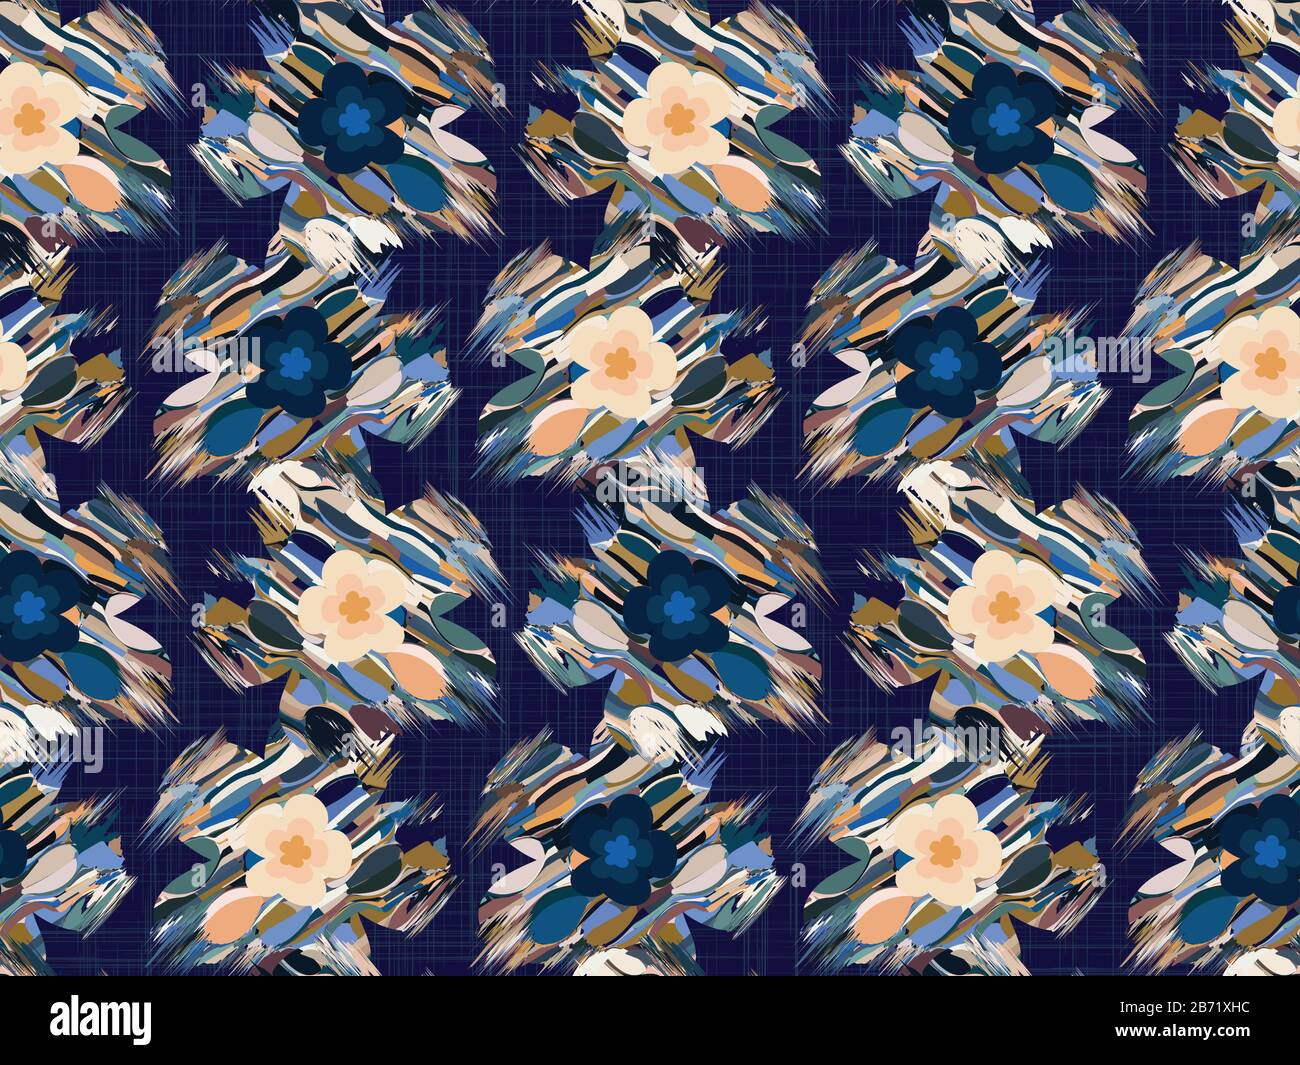 Distorted Graphic Glitch Daisy Flower Seamless Pattern Modern